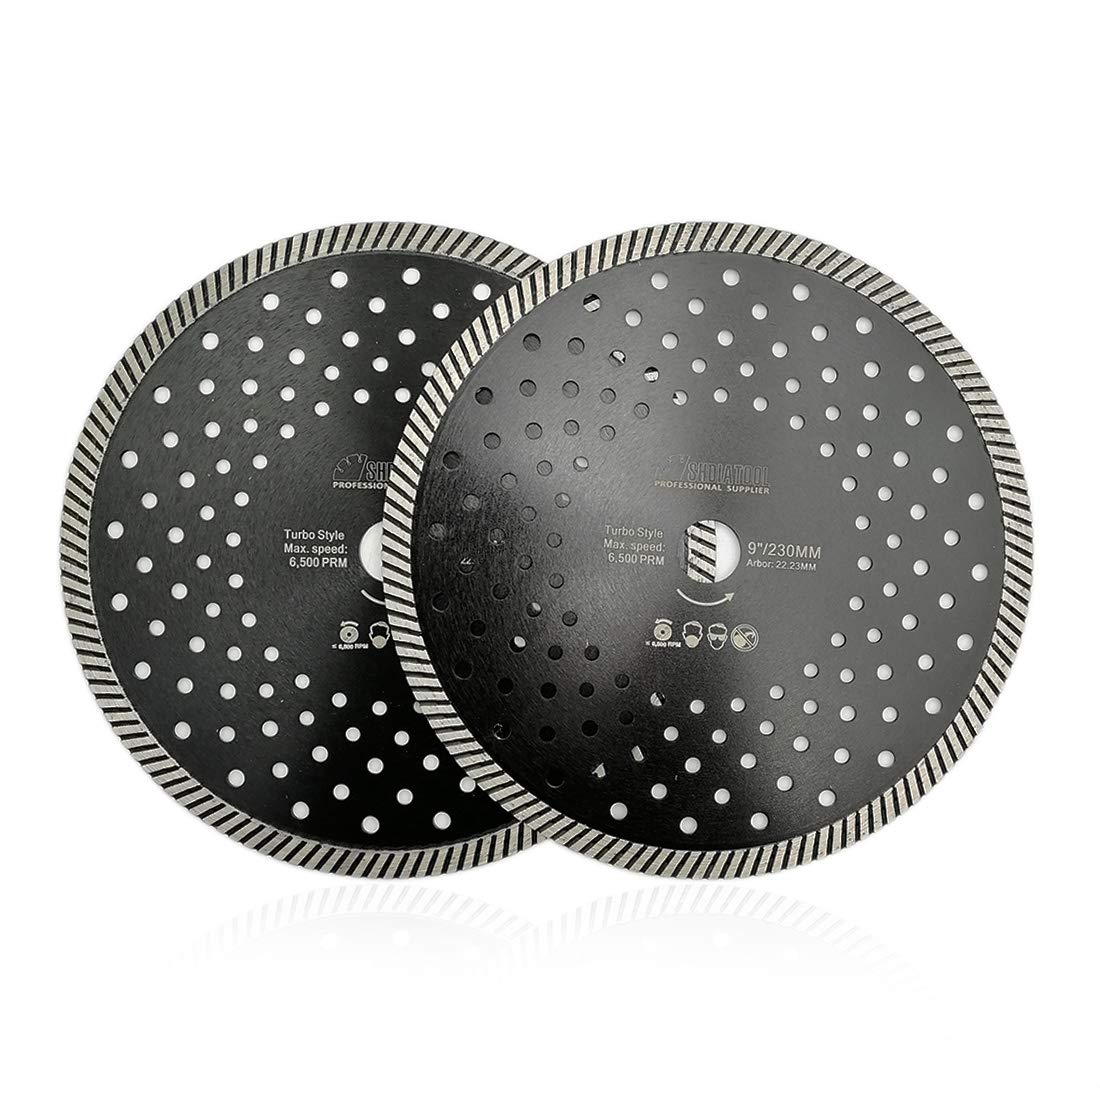 SHDIATOOL 4.5-Inch Diamond Narrow Turbo Blade with Multi Holes for Tile Granite Marble Concrete Pack of 2